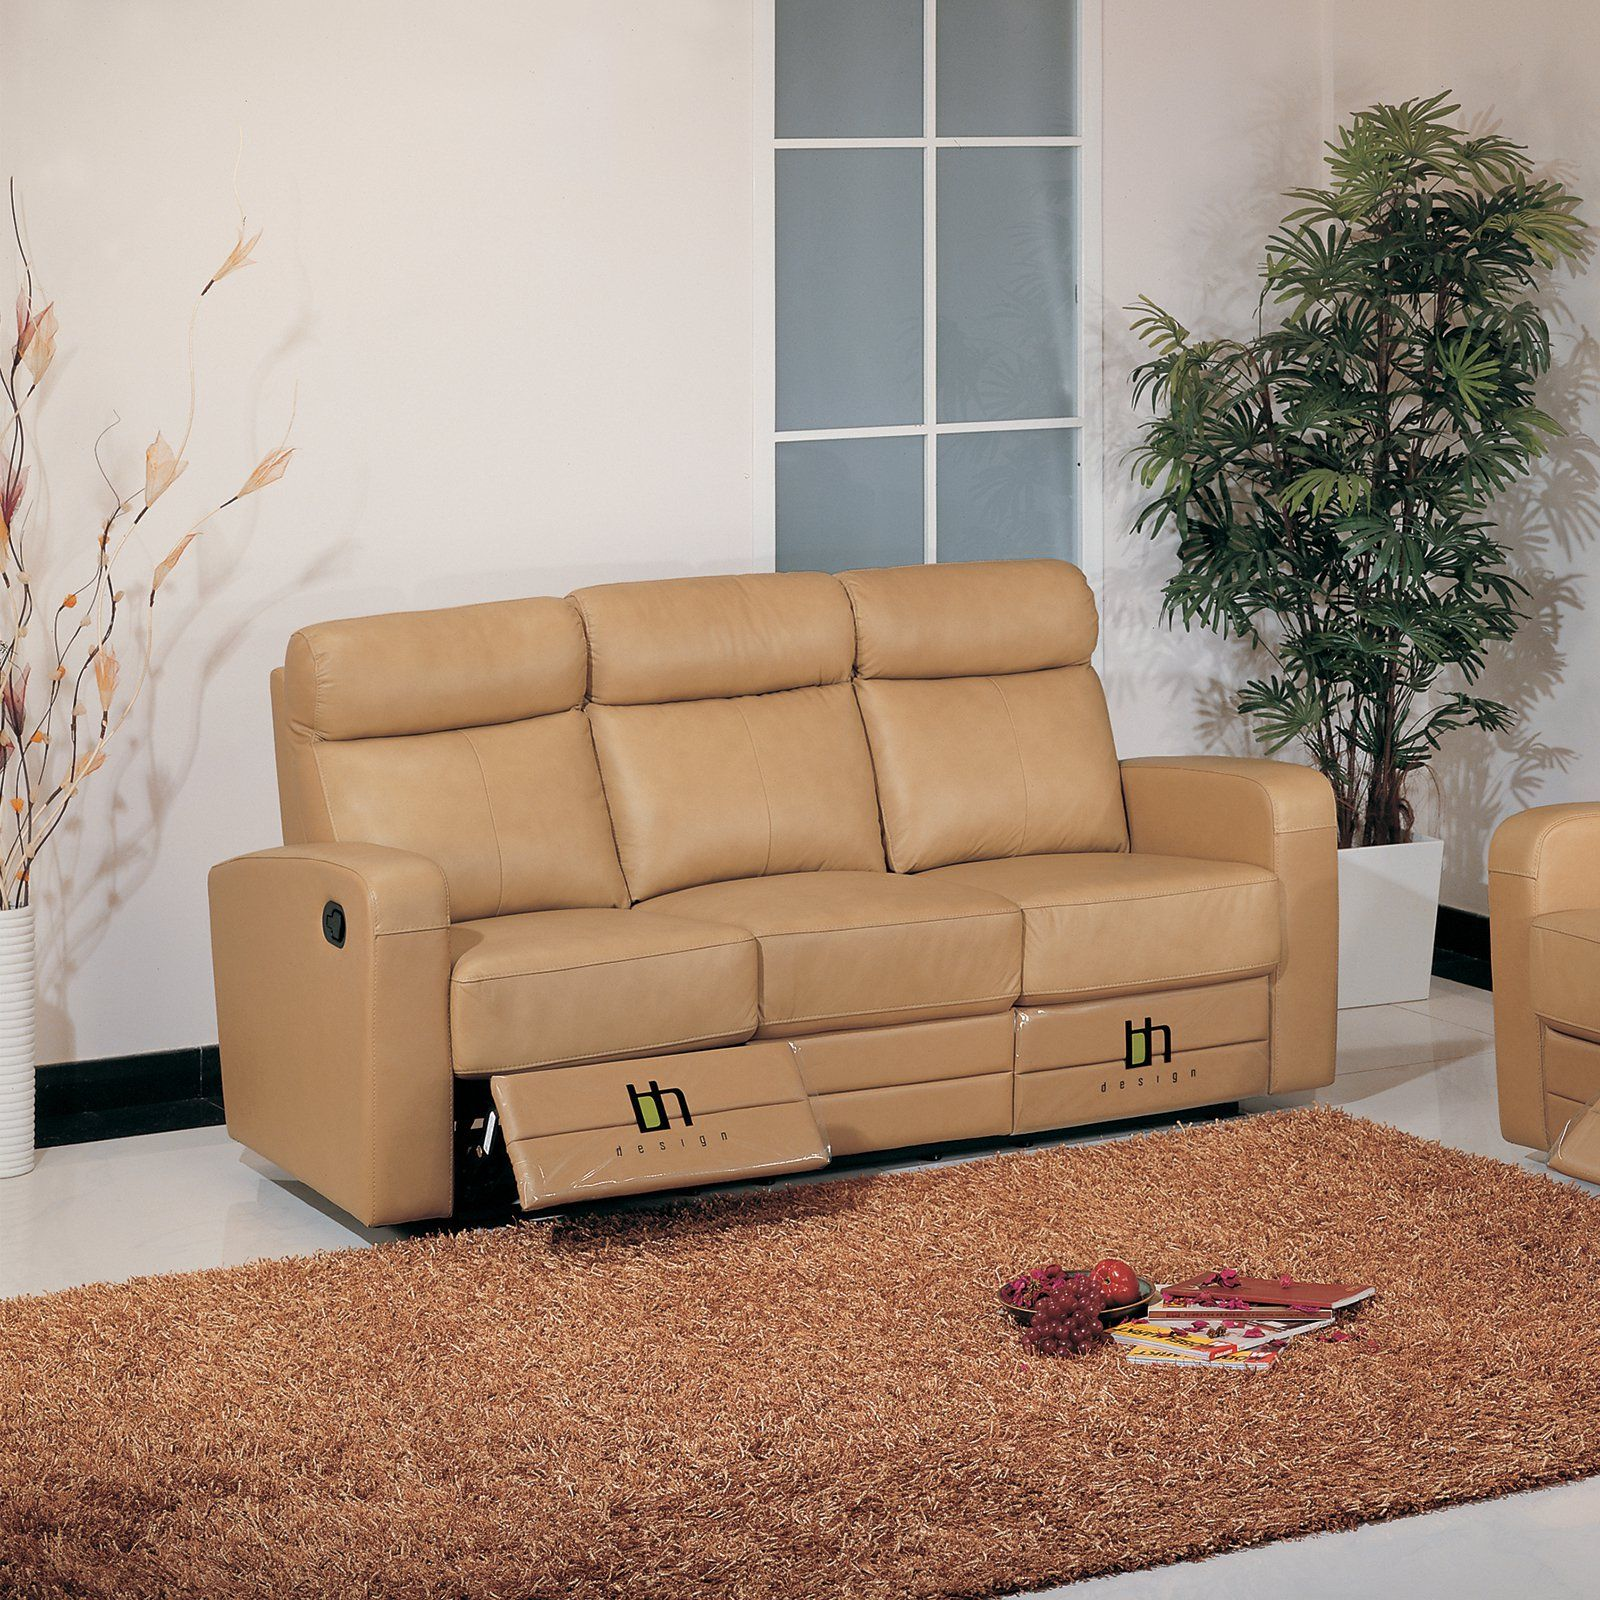 Sofa Reclinable Argentina Slope Leather Sofa Taupe Products Pinterest Leather